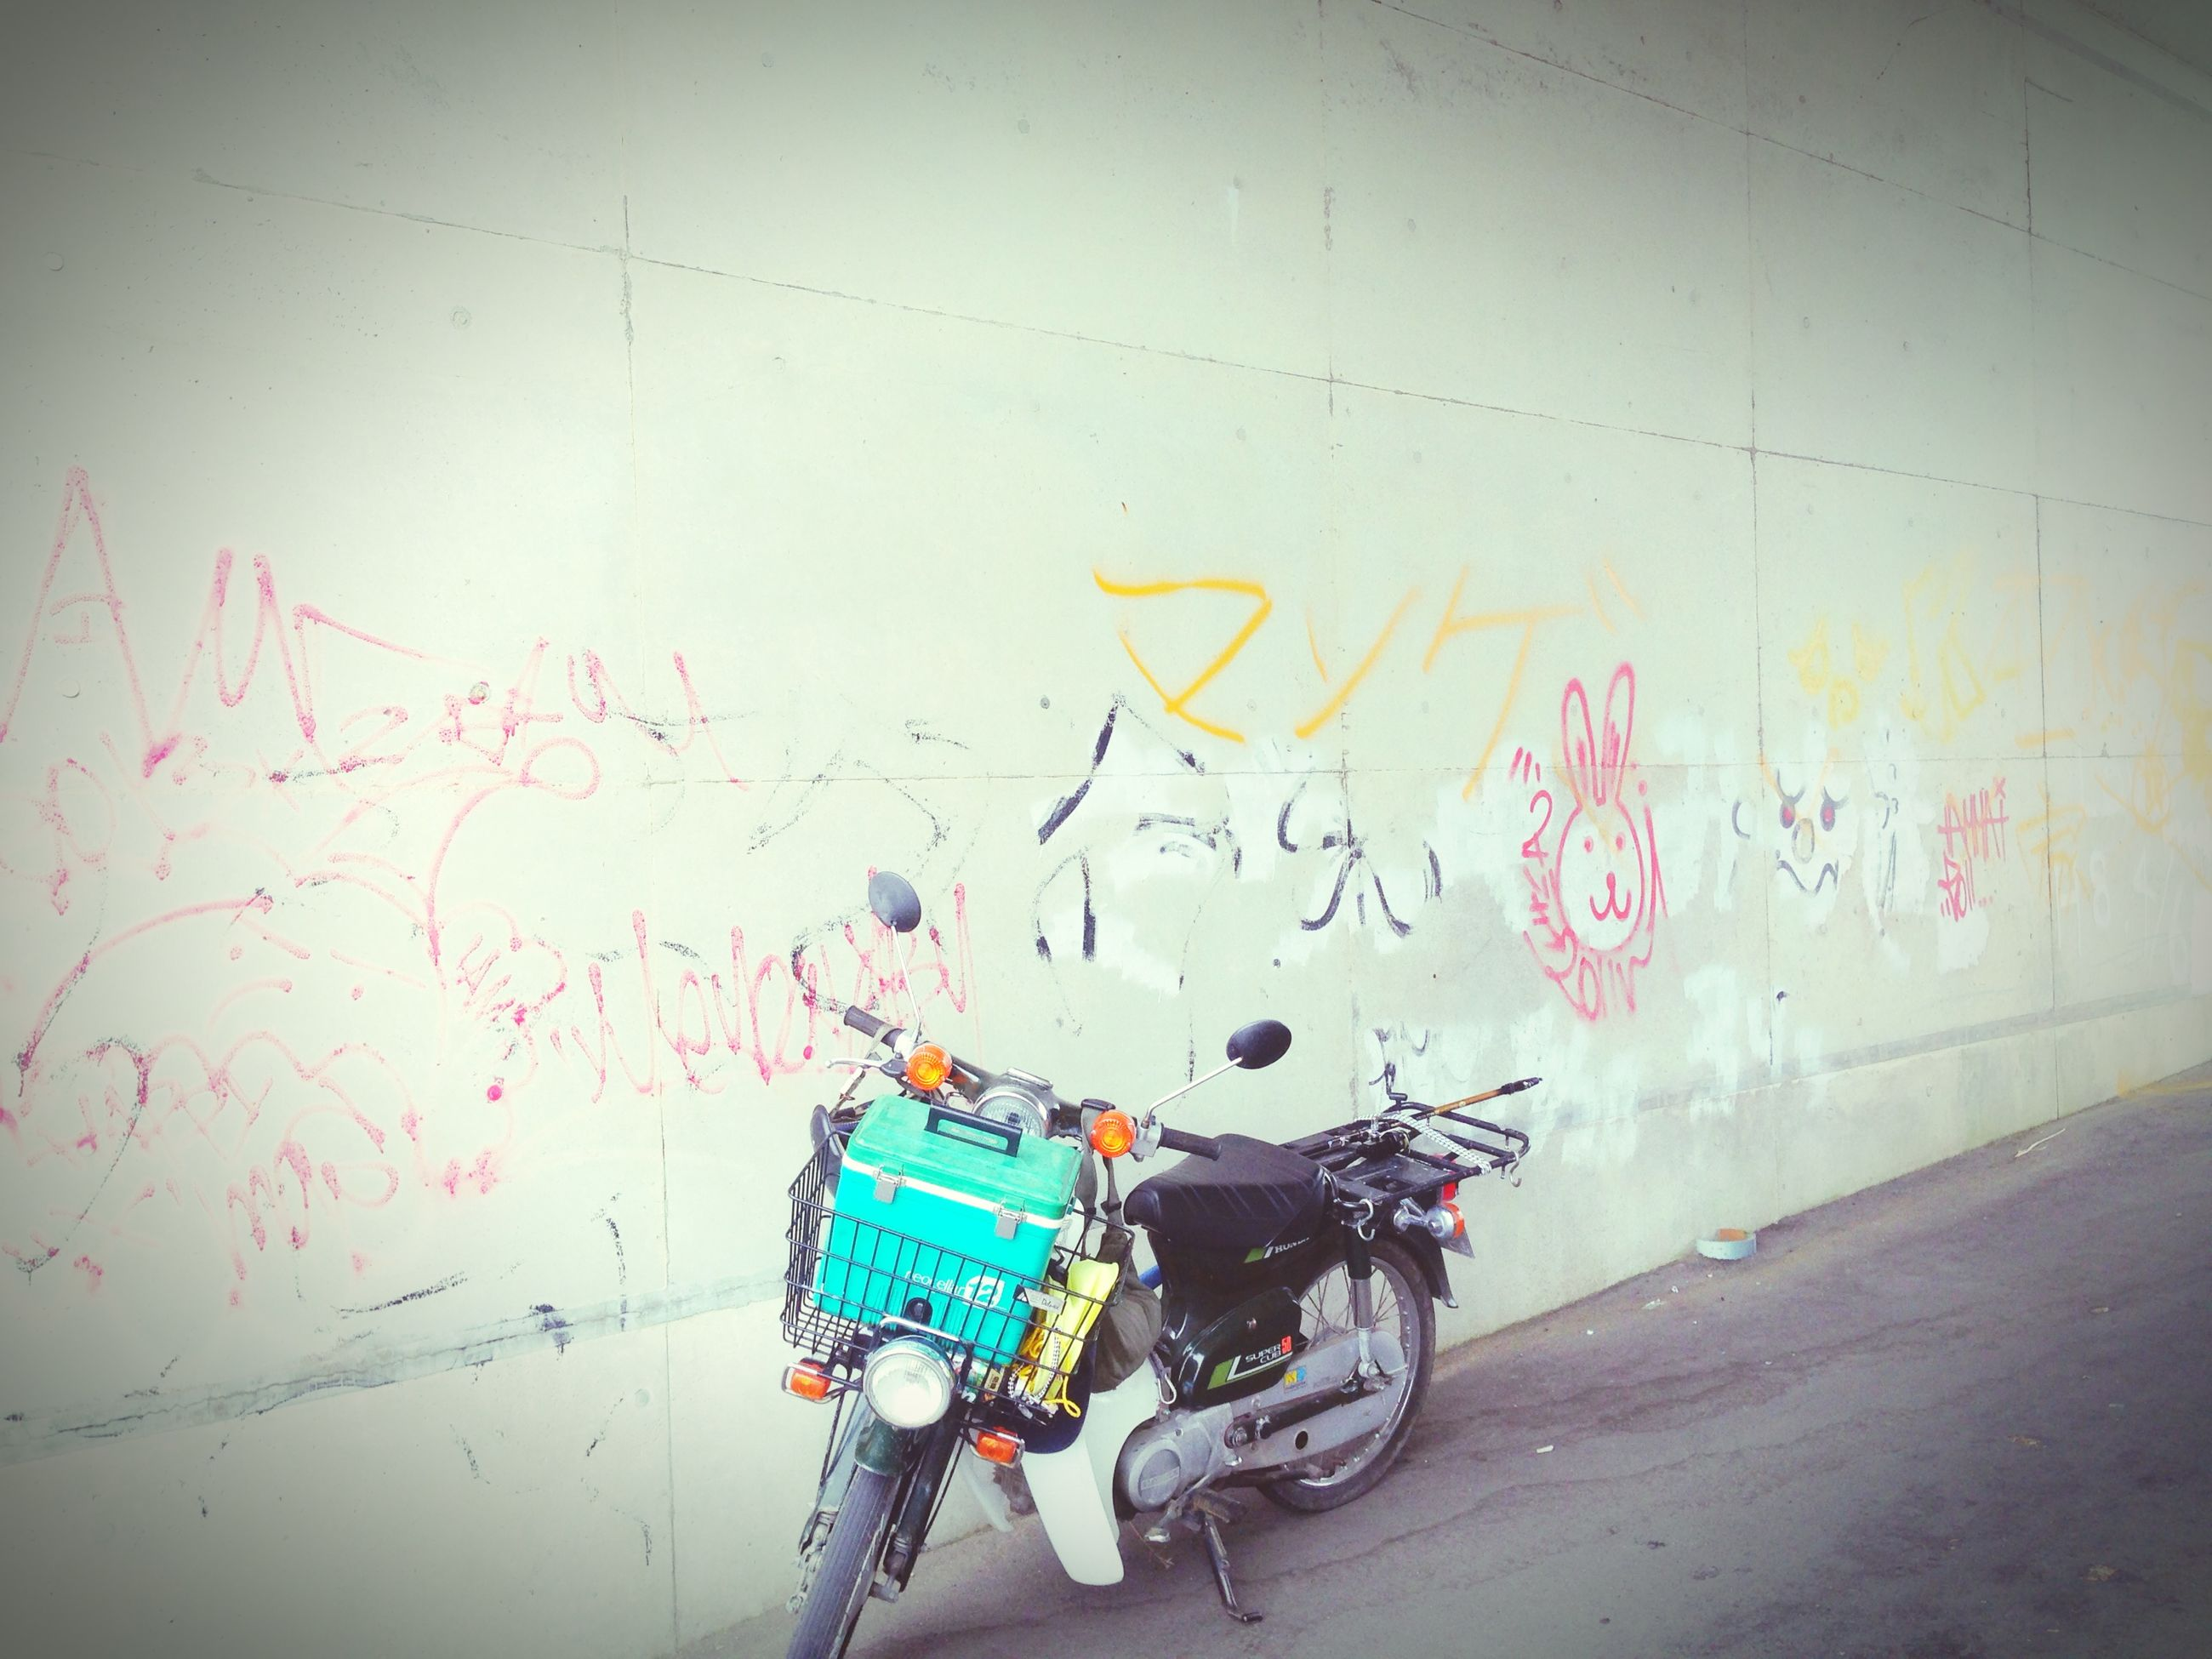 bicycle, text, transportation, graffiti, wall - building feature, communication, western script, mode of transport, land vehicle, stationary, wall, parked, parking, street, day, riding, sign, men, outdoors